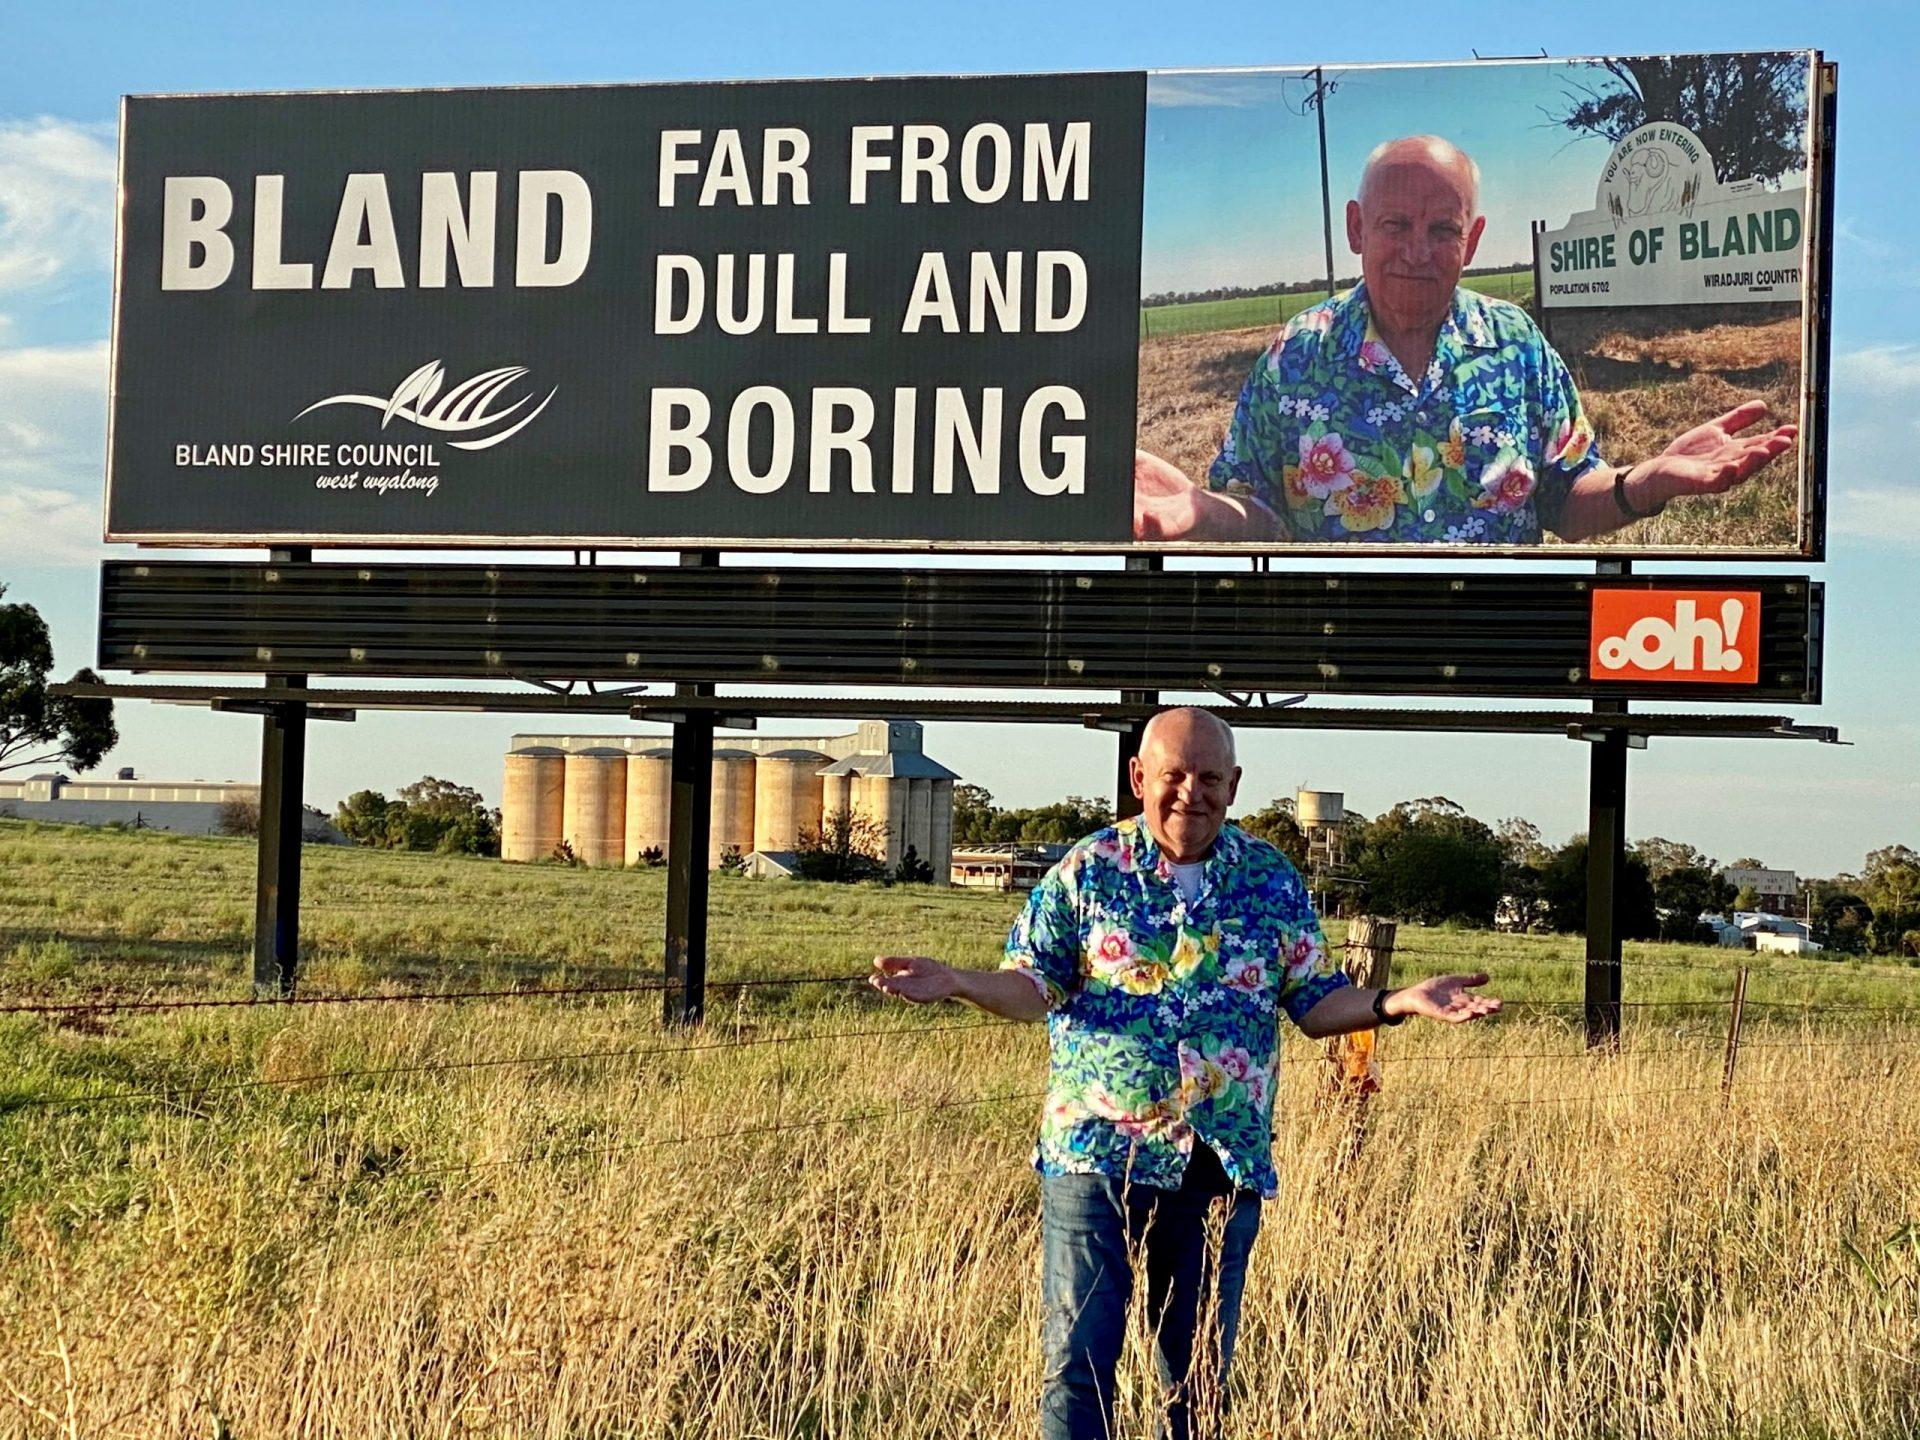 Bland Shire Council's General Manager, Ray Smith, at the the Bland, Dull and Boring billboard on the Newell Highway, Bland Shire, Australia. Image taken by Donna Smith